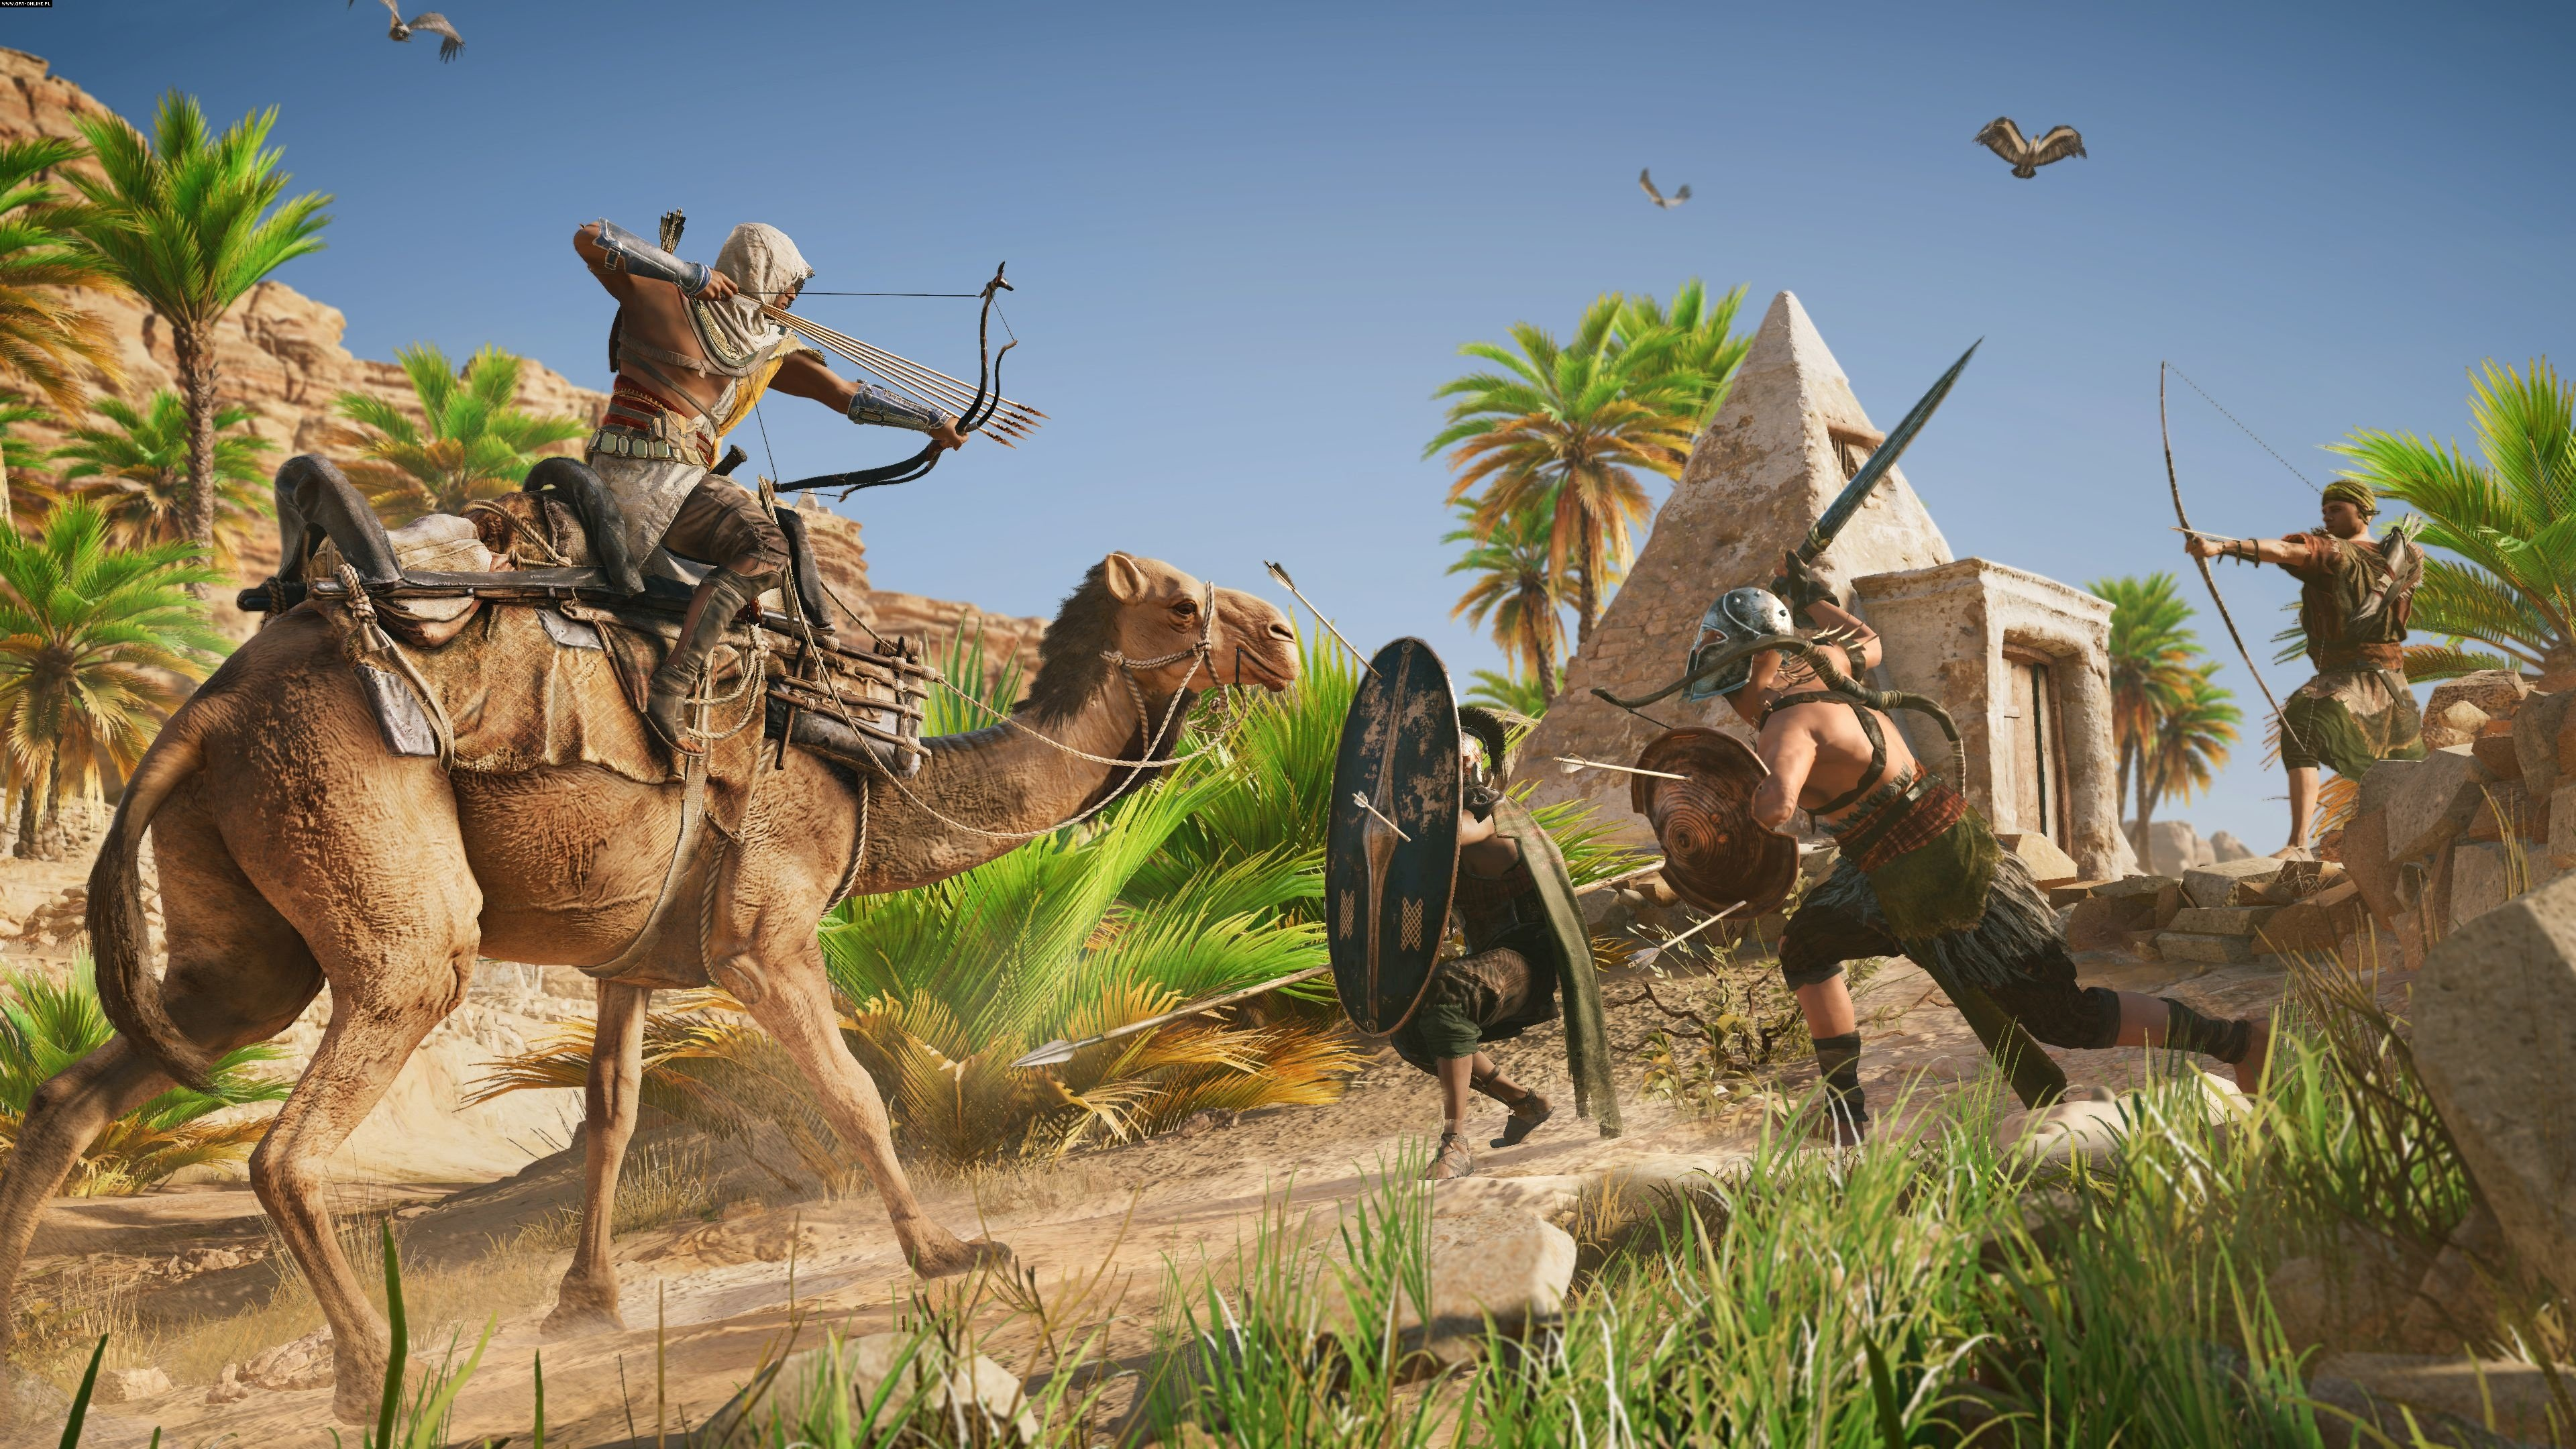 Assassin's Creed Origins PC, PS4, XONE Games Image 16/24, Ubisoft